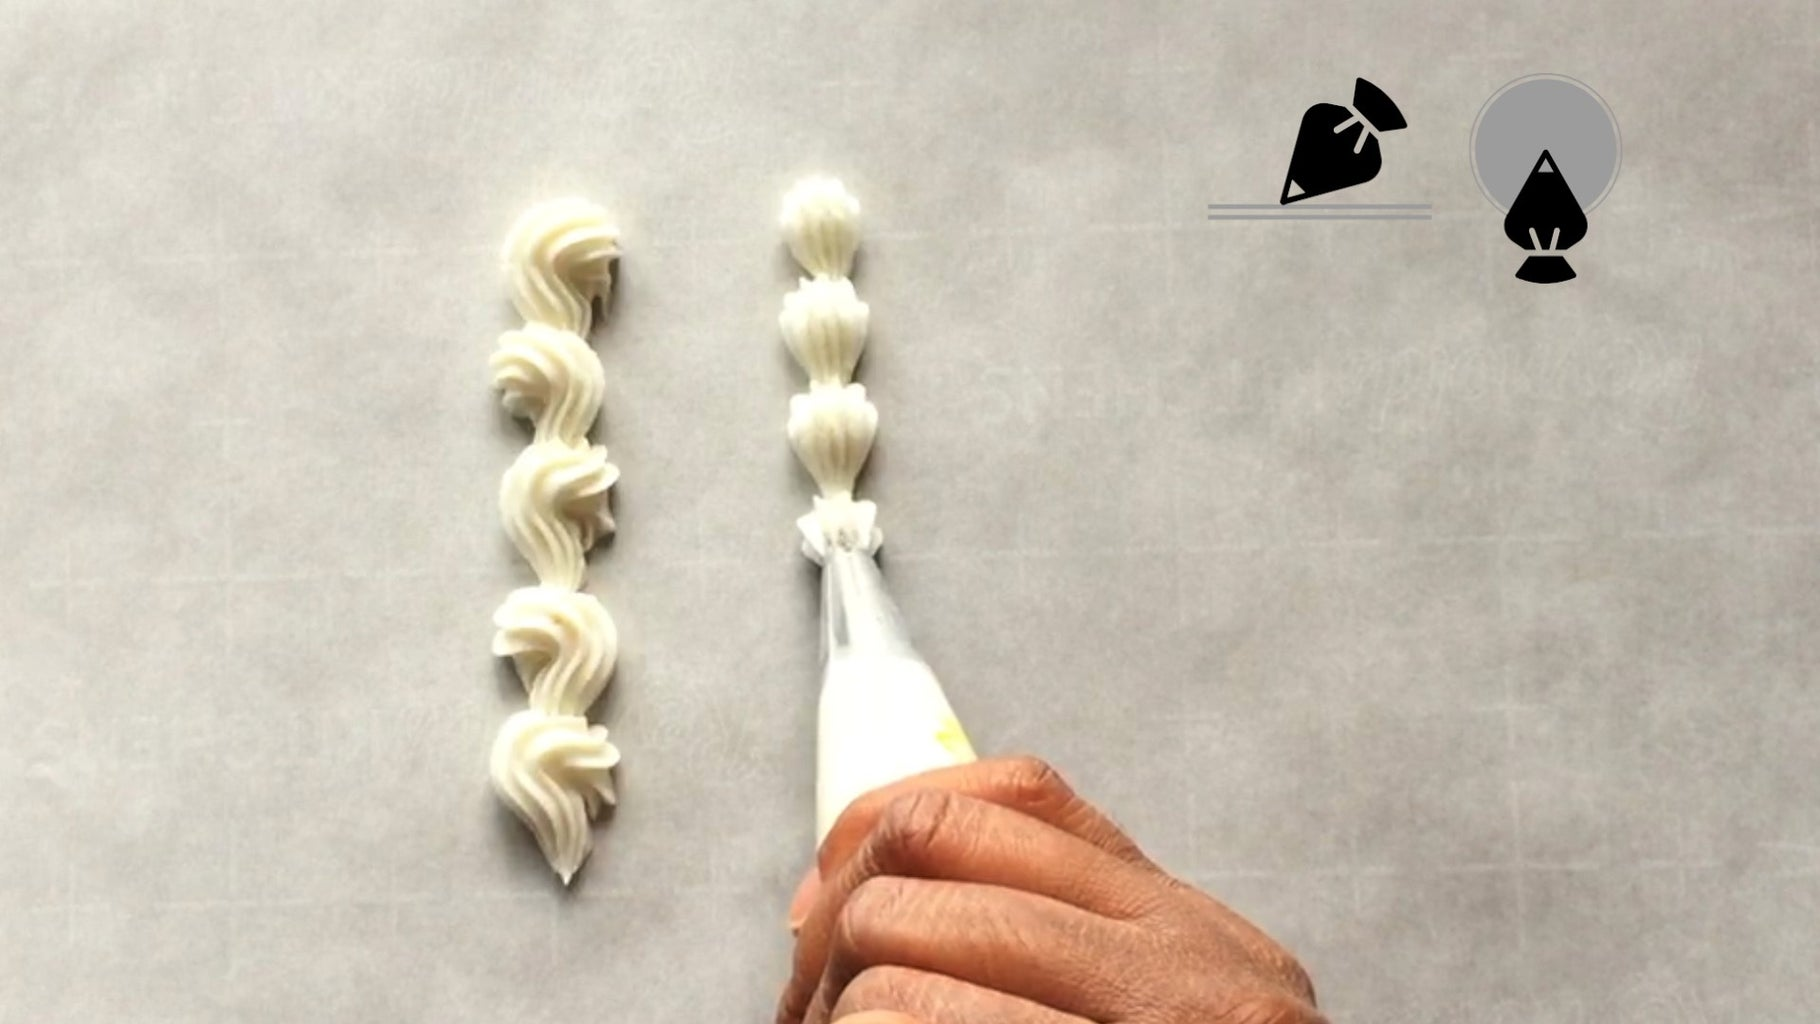 Step 7: Practice the Shell Technique